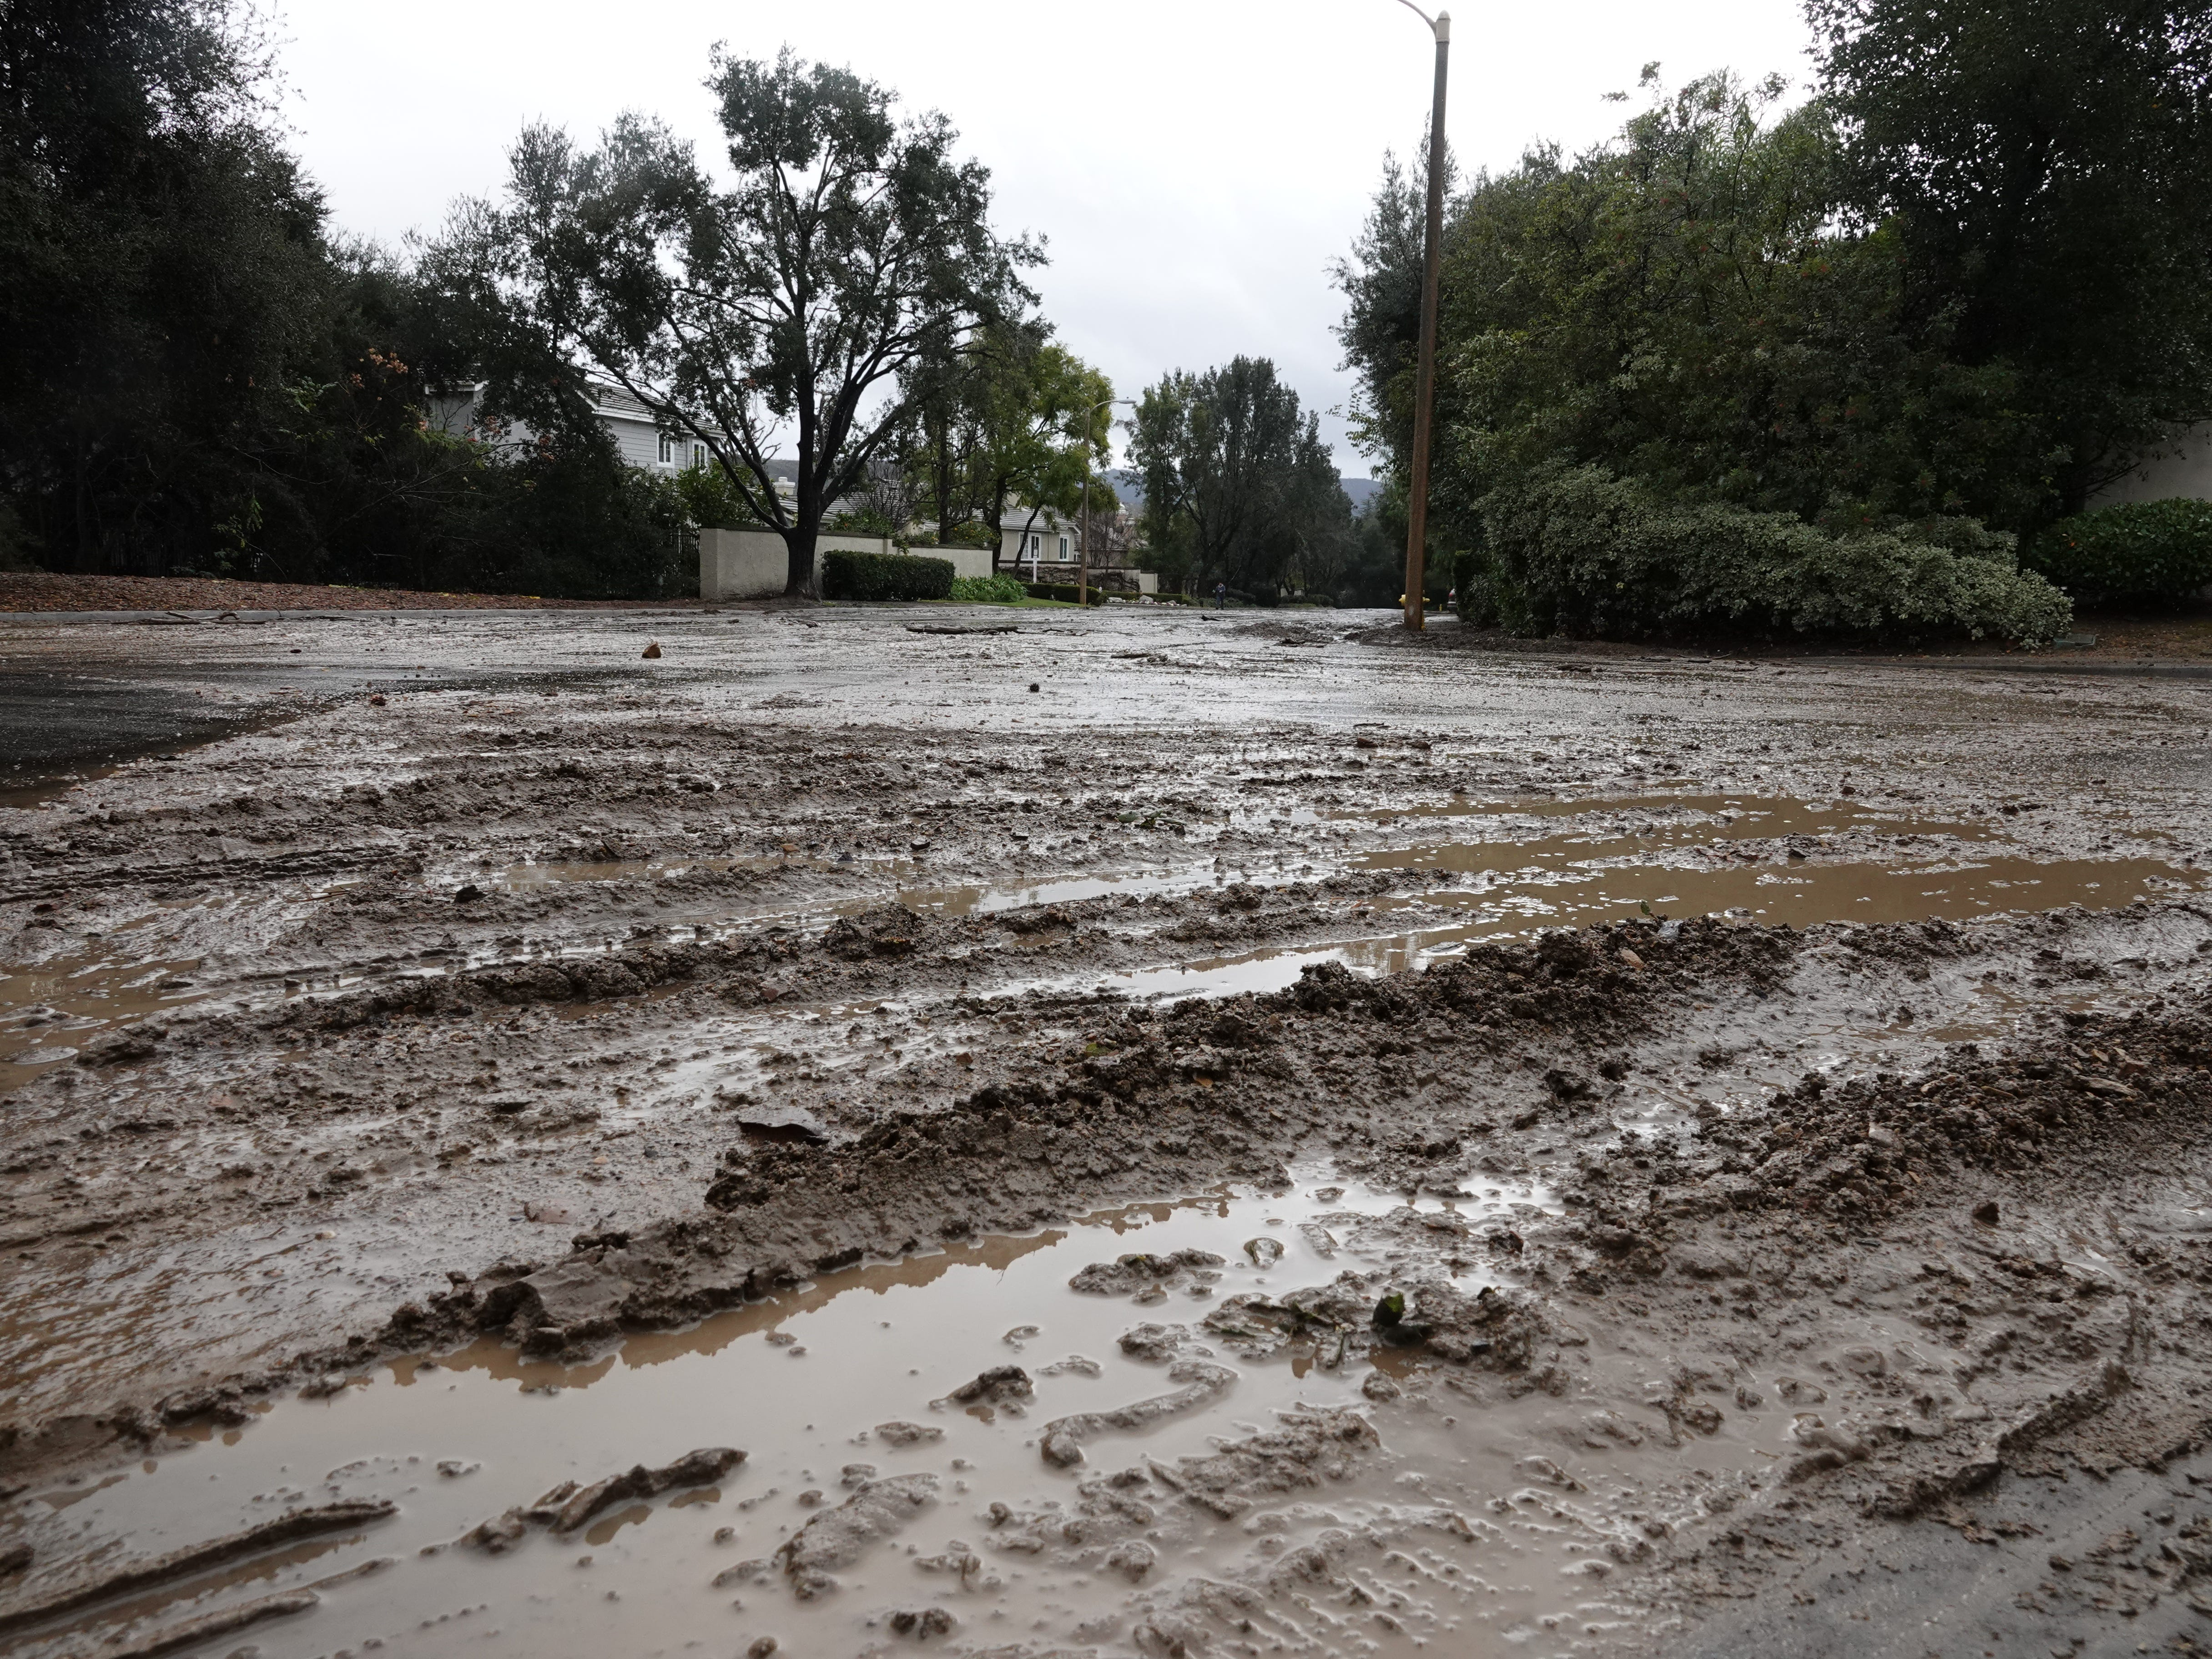 Mud seeped onto residential streets in many parts of Ventura County Saturday, including the intersection of Bowfield and Rockfield streets in the North Ranch area of Thousand Oaks.